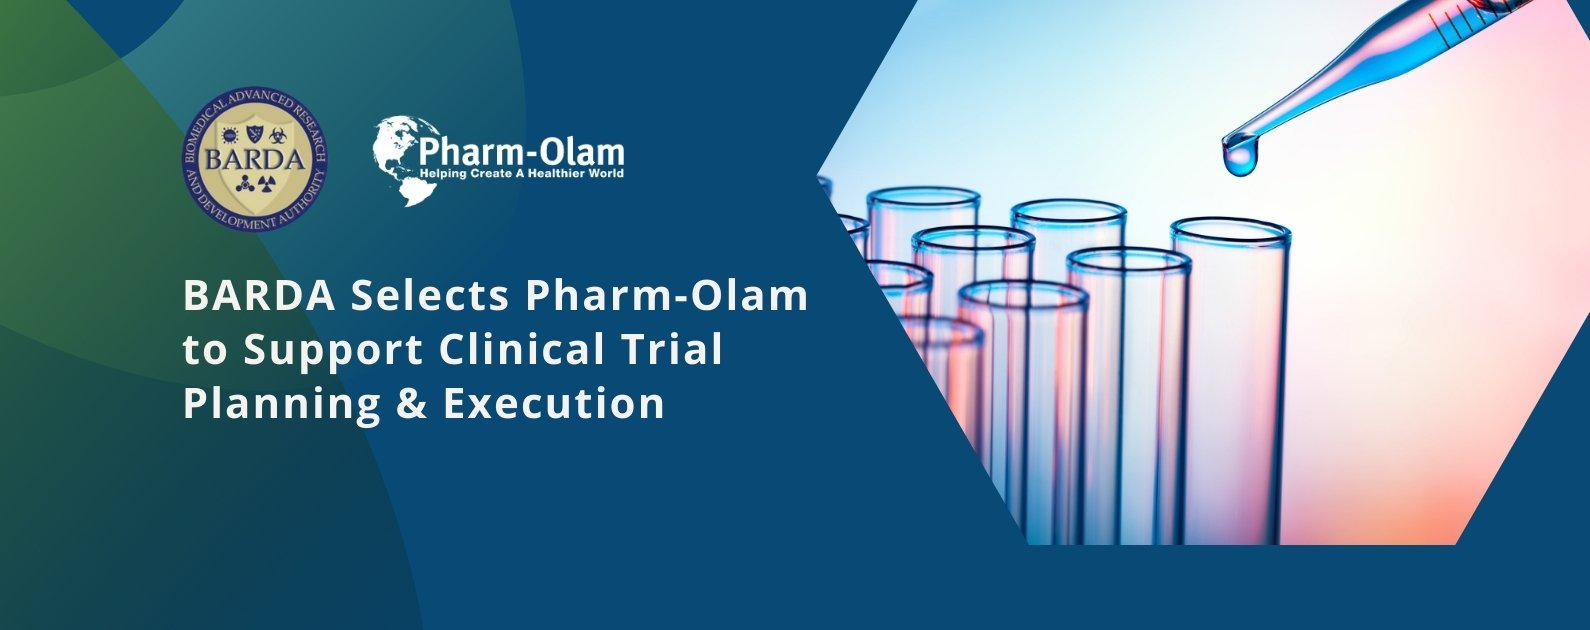 BARDA Selects Pharm-Olam to Support Clinical Trial Planning & Execution for up to 5 Years